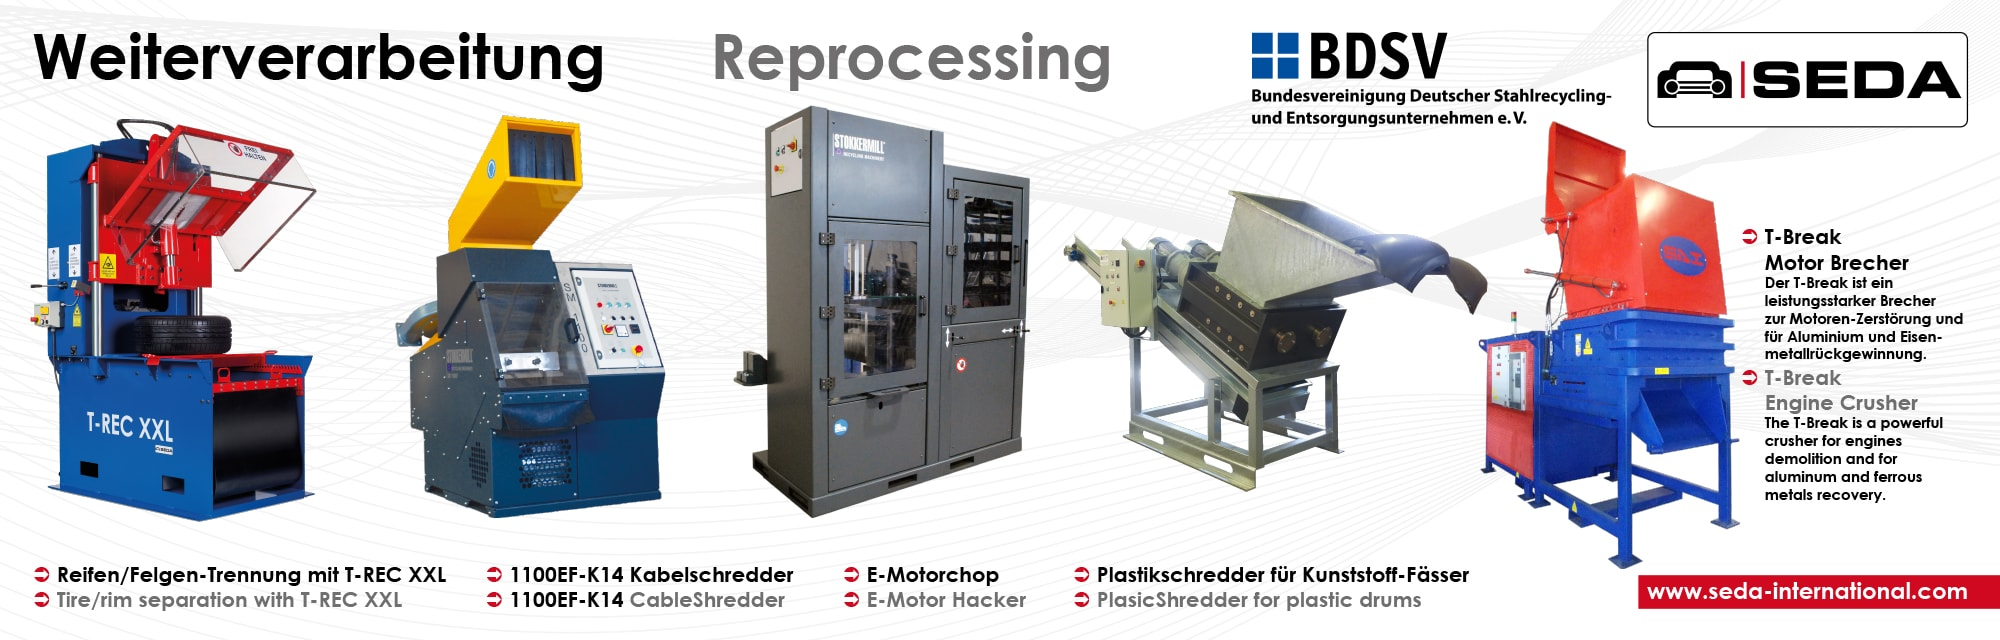 IFAT2016 Station 5 Weiterverarbeitung min - SEDA presented car recycling LIVE at IFAT 2016